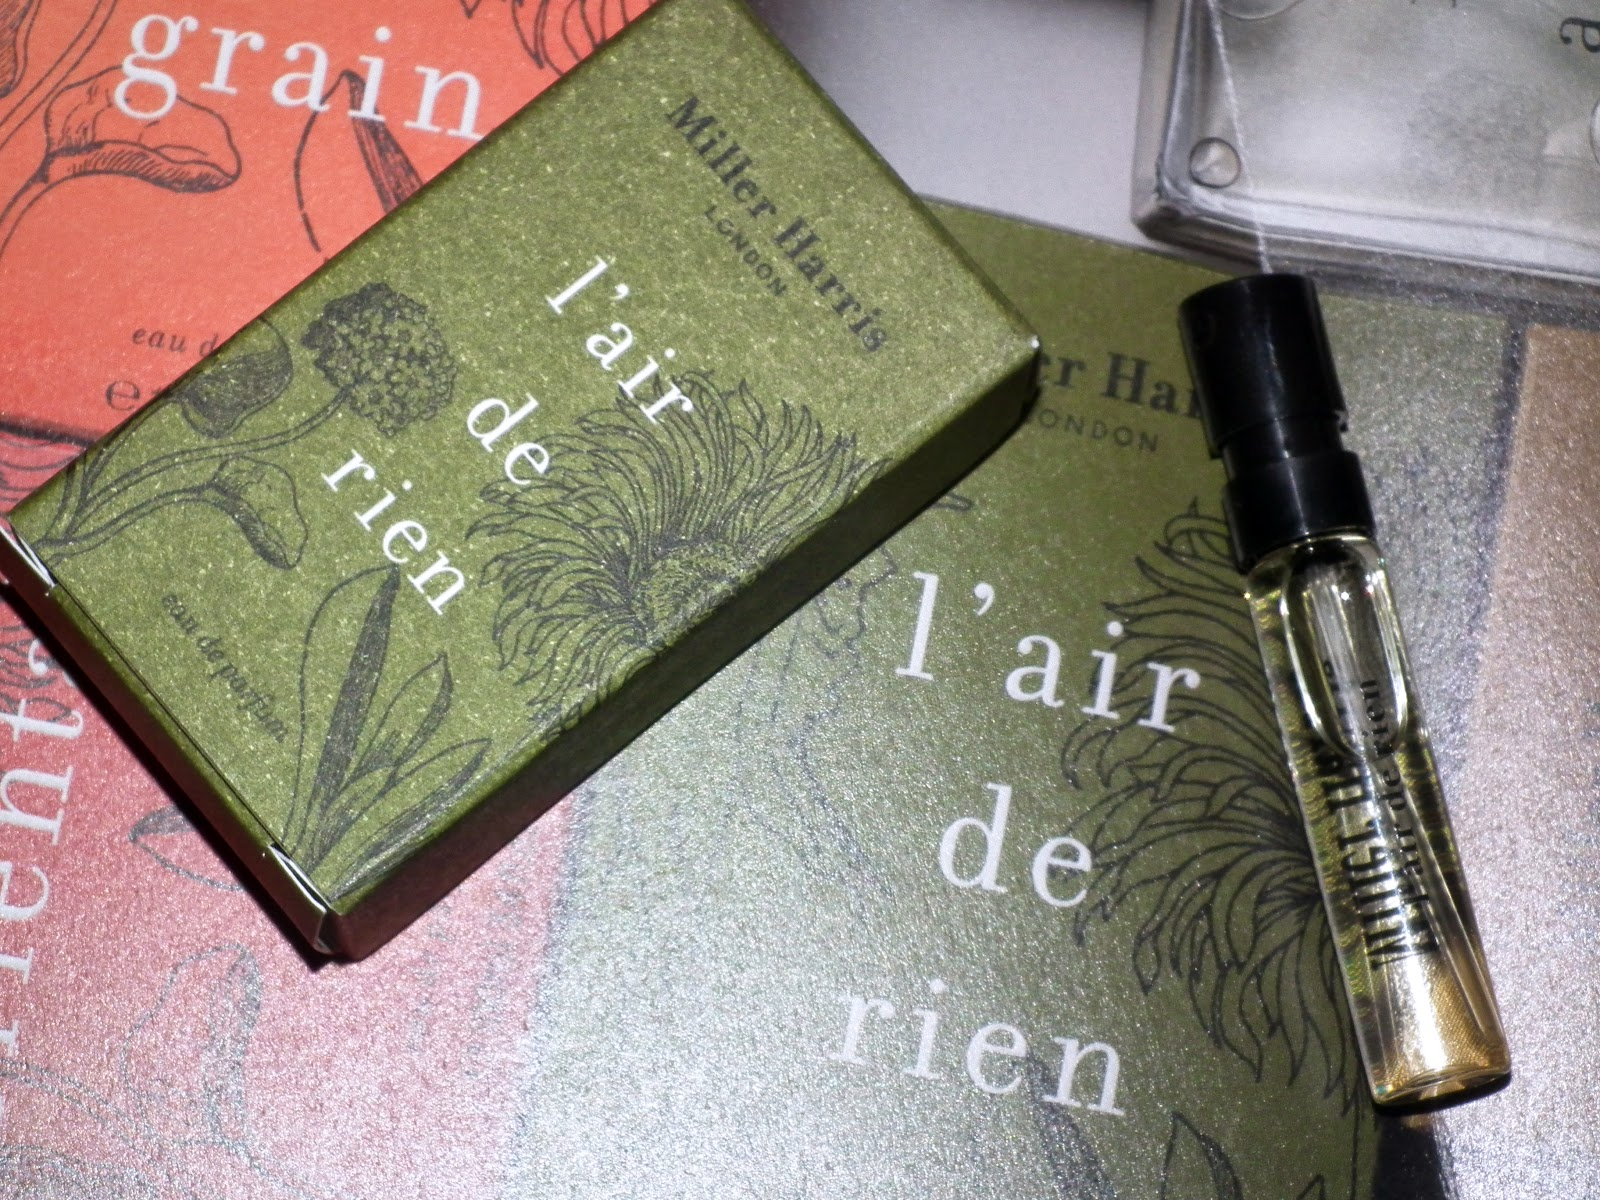 Miller Harris L'air De Rien Eau de Parfum Reviews